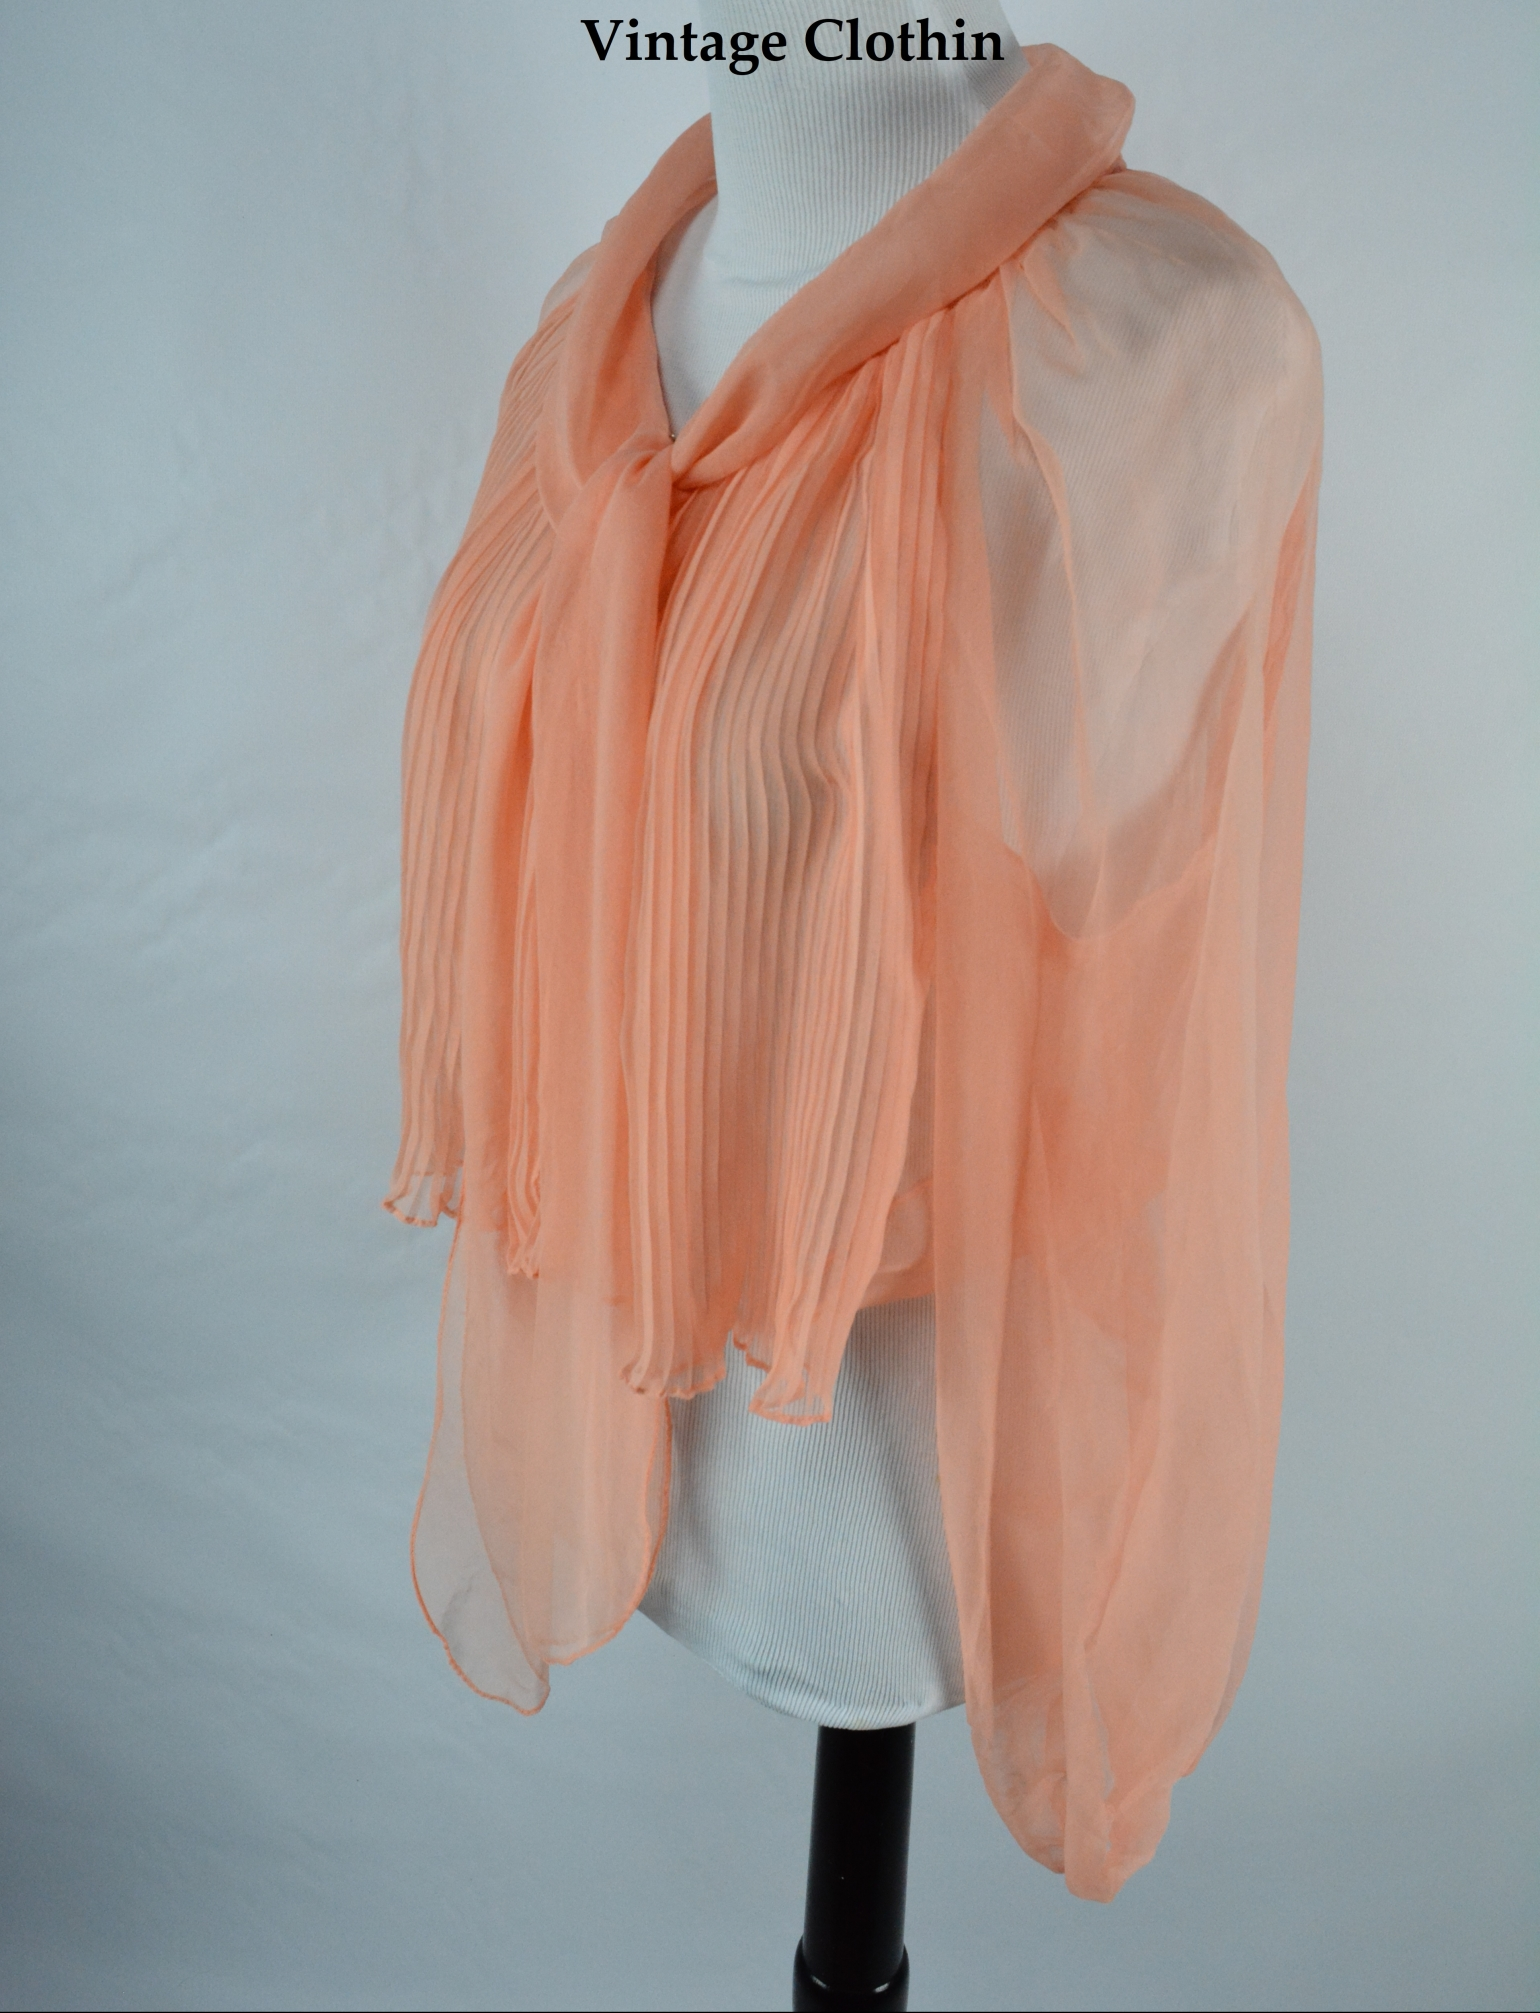 C1950s Sheer Peach Lingerie Top, Blouse, Cardigan